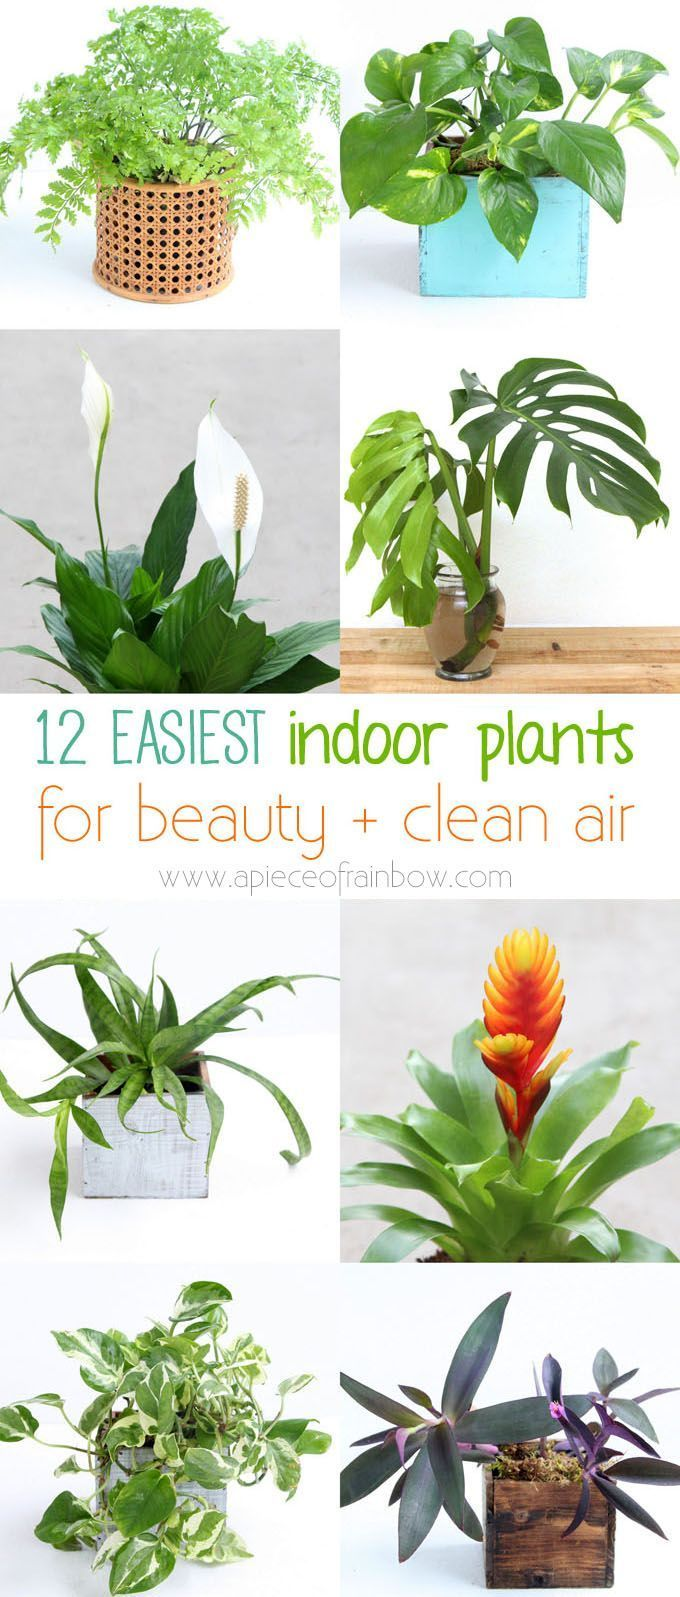 Garden Inspiratie 12 easiest beautiful indoor plants to grow! NASA studies show they are super effective at cleaning air and removing toxins from indoor environments. - A Piece Of Rainbow #indoorplants #houseplants #gardening #gardeningtips #urbangardening #gardendesign #gardenideas #containergardening #diy #bohemian #bohemiandecor #bohochic #boho #homedecor #homedecorideas #wellness #bedroom #livingroom #farmhouse #farmhousestyle #farmhousedecor.Garden Inspiratie  12 easiest beautiful indoor pl